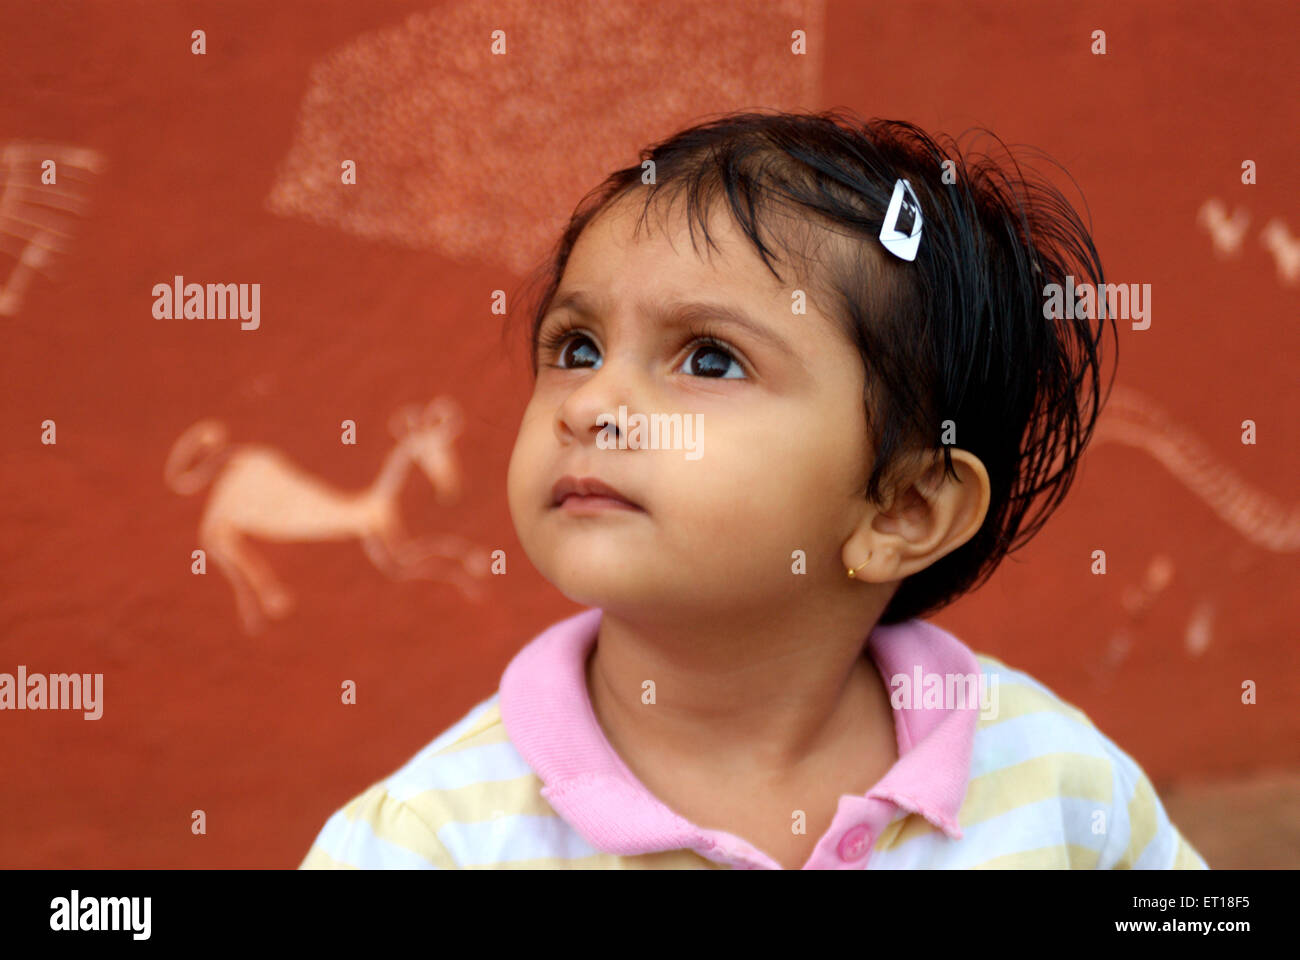 Baby looking up hair tied with clip MR#364 - Stock Image